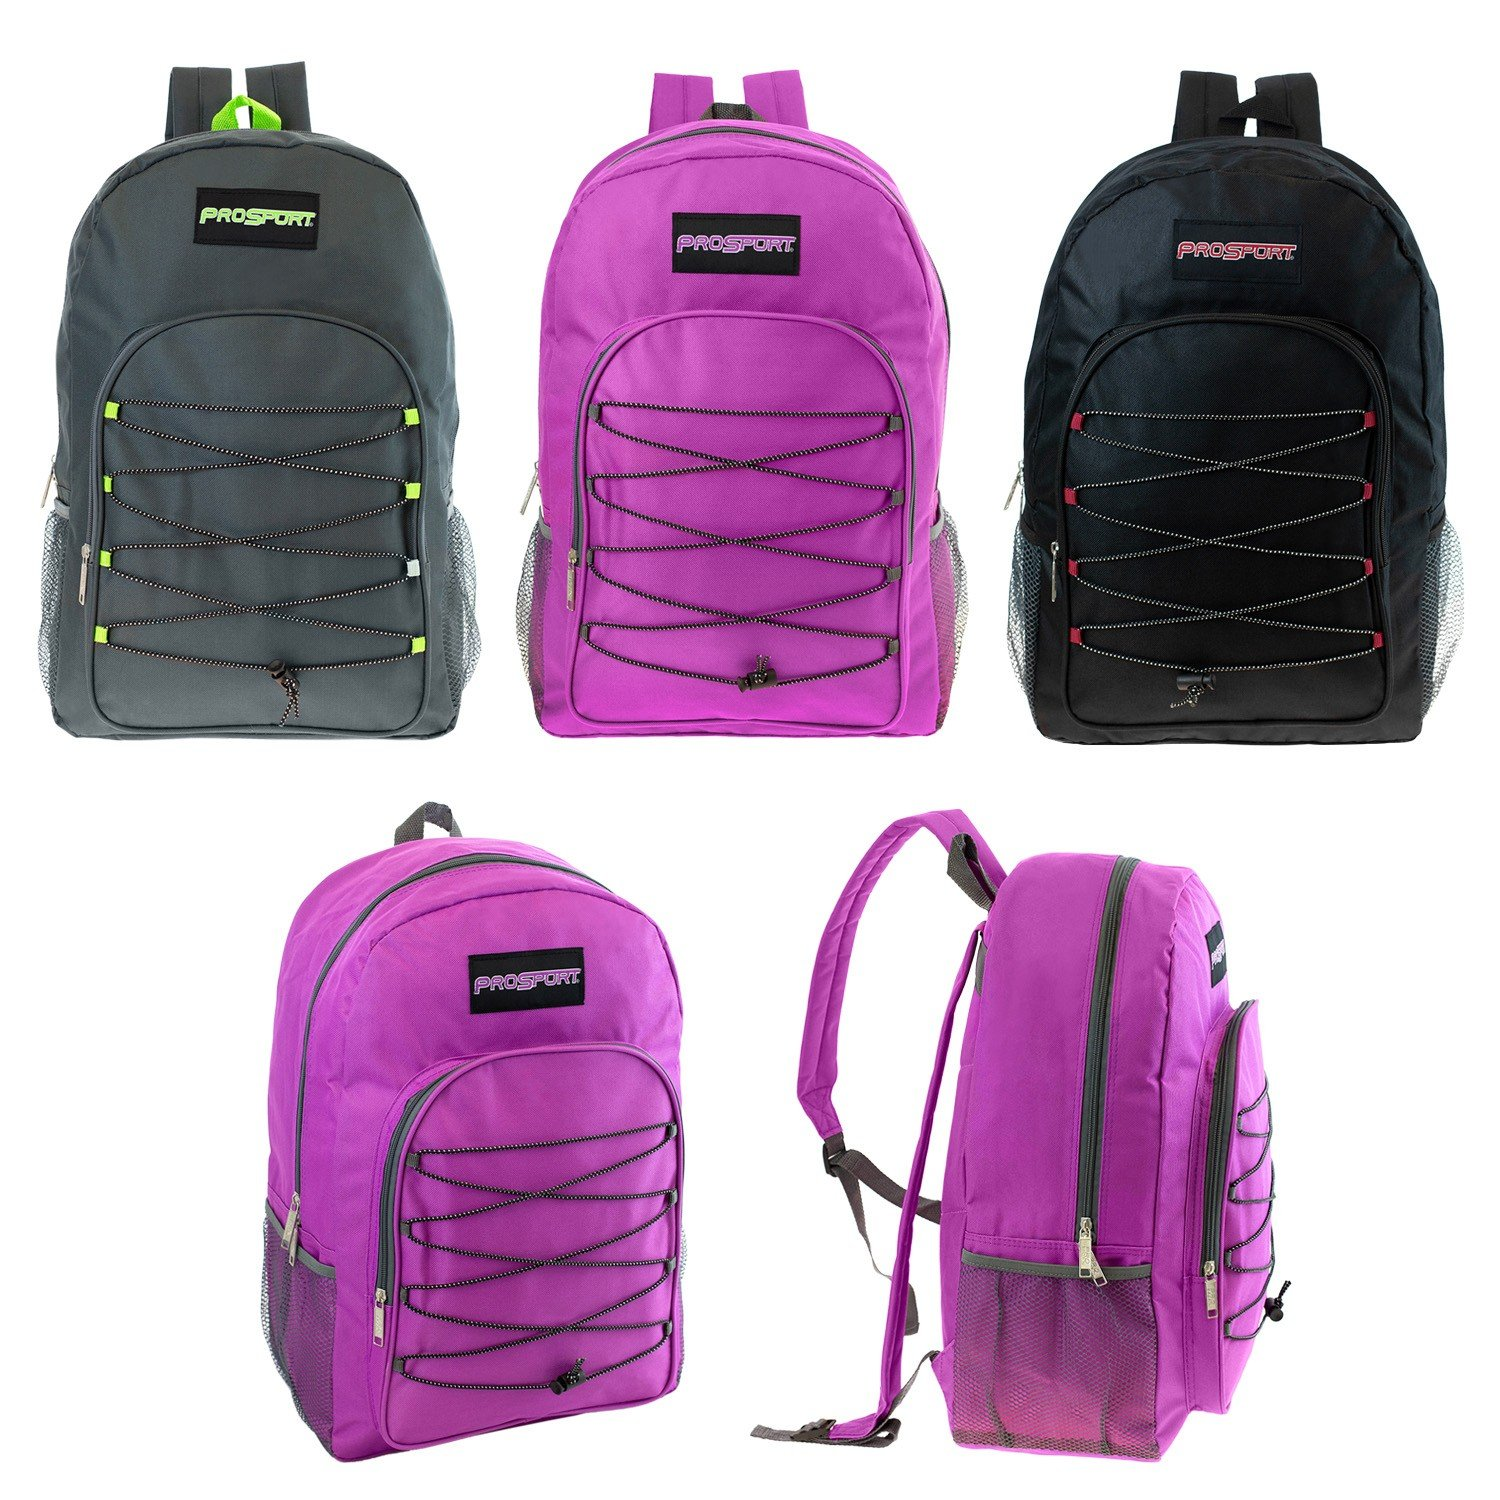 Bulk Case of 24 Bookbags Wholesale 19 Heavy Duty Bungee Backpack in 3 Assorted Colors